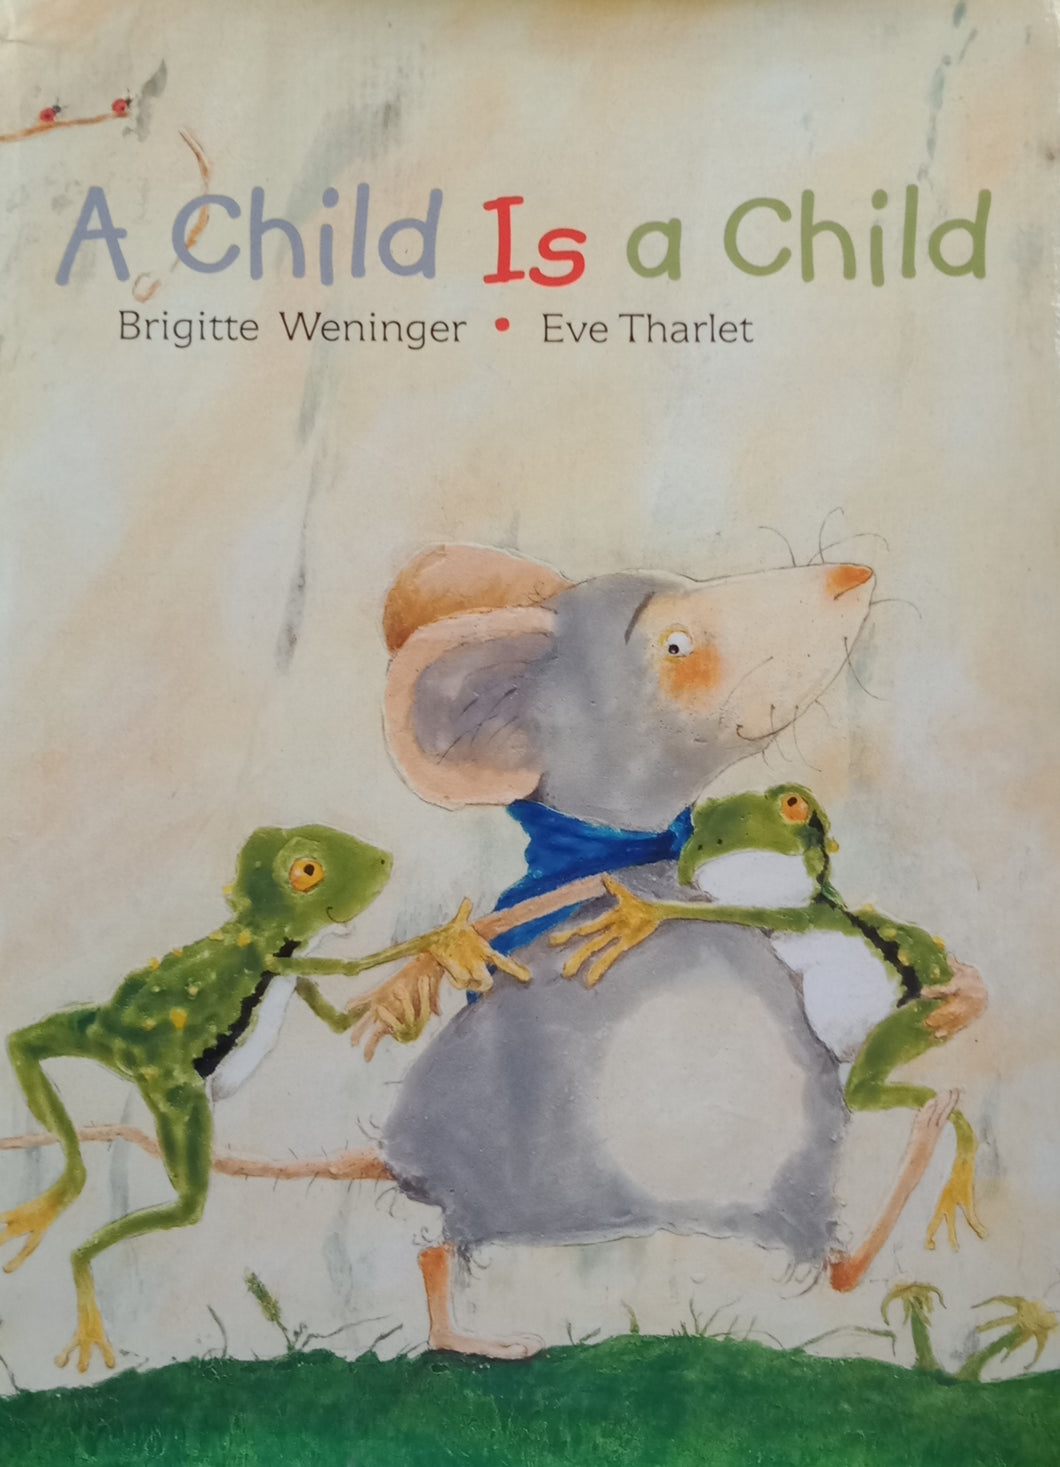 A Child Is A Child by Brigitte Weninger